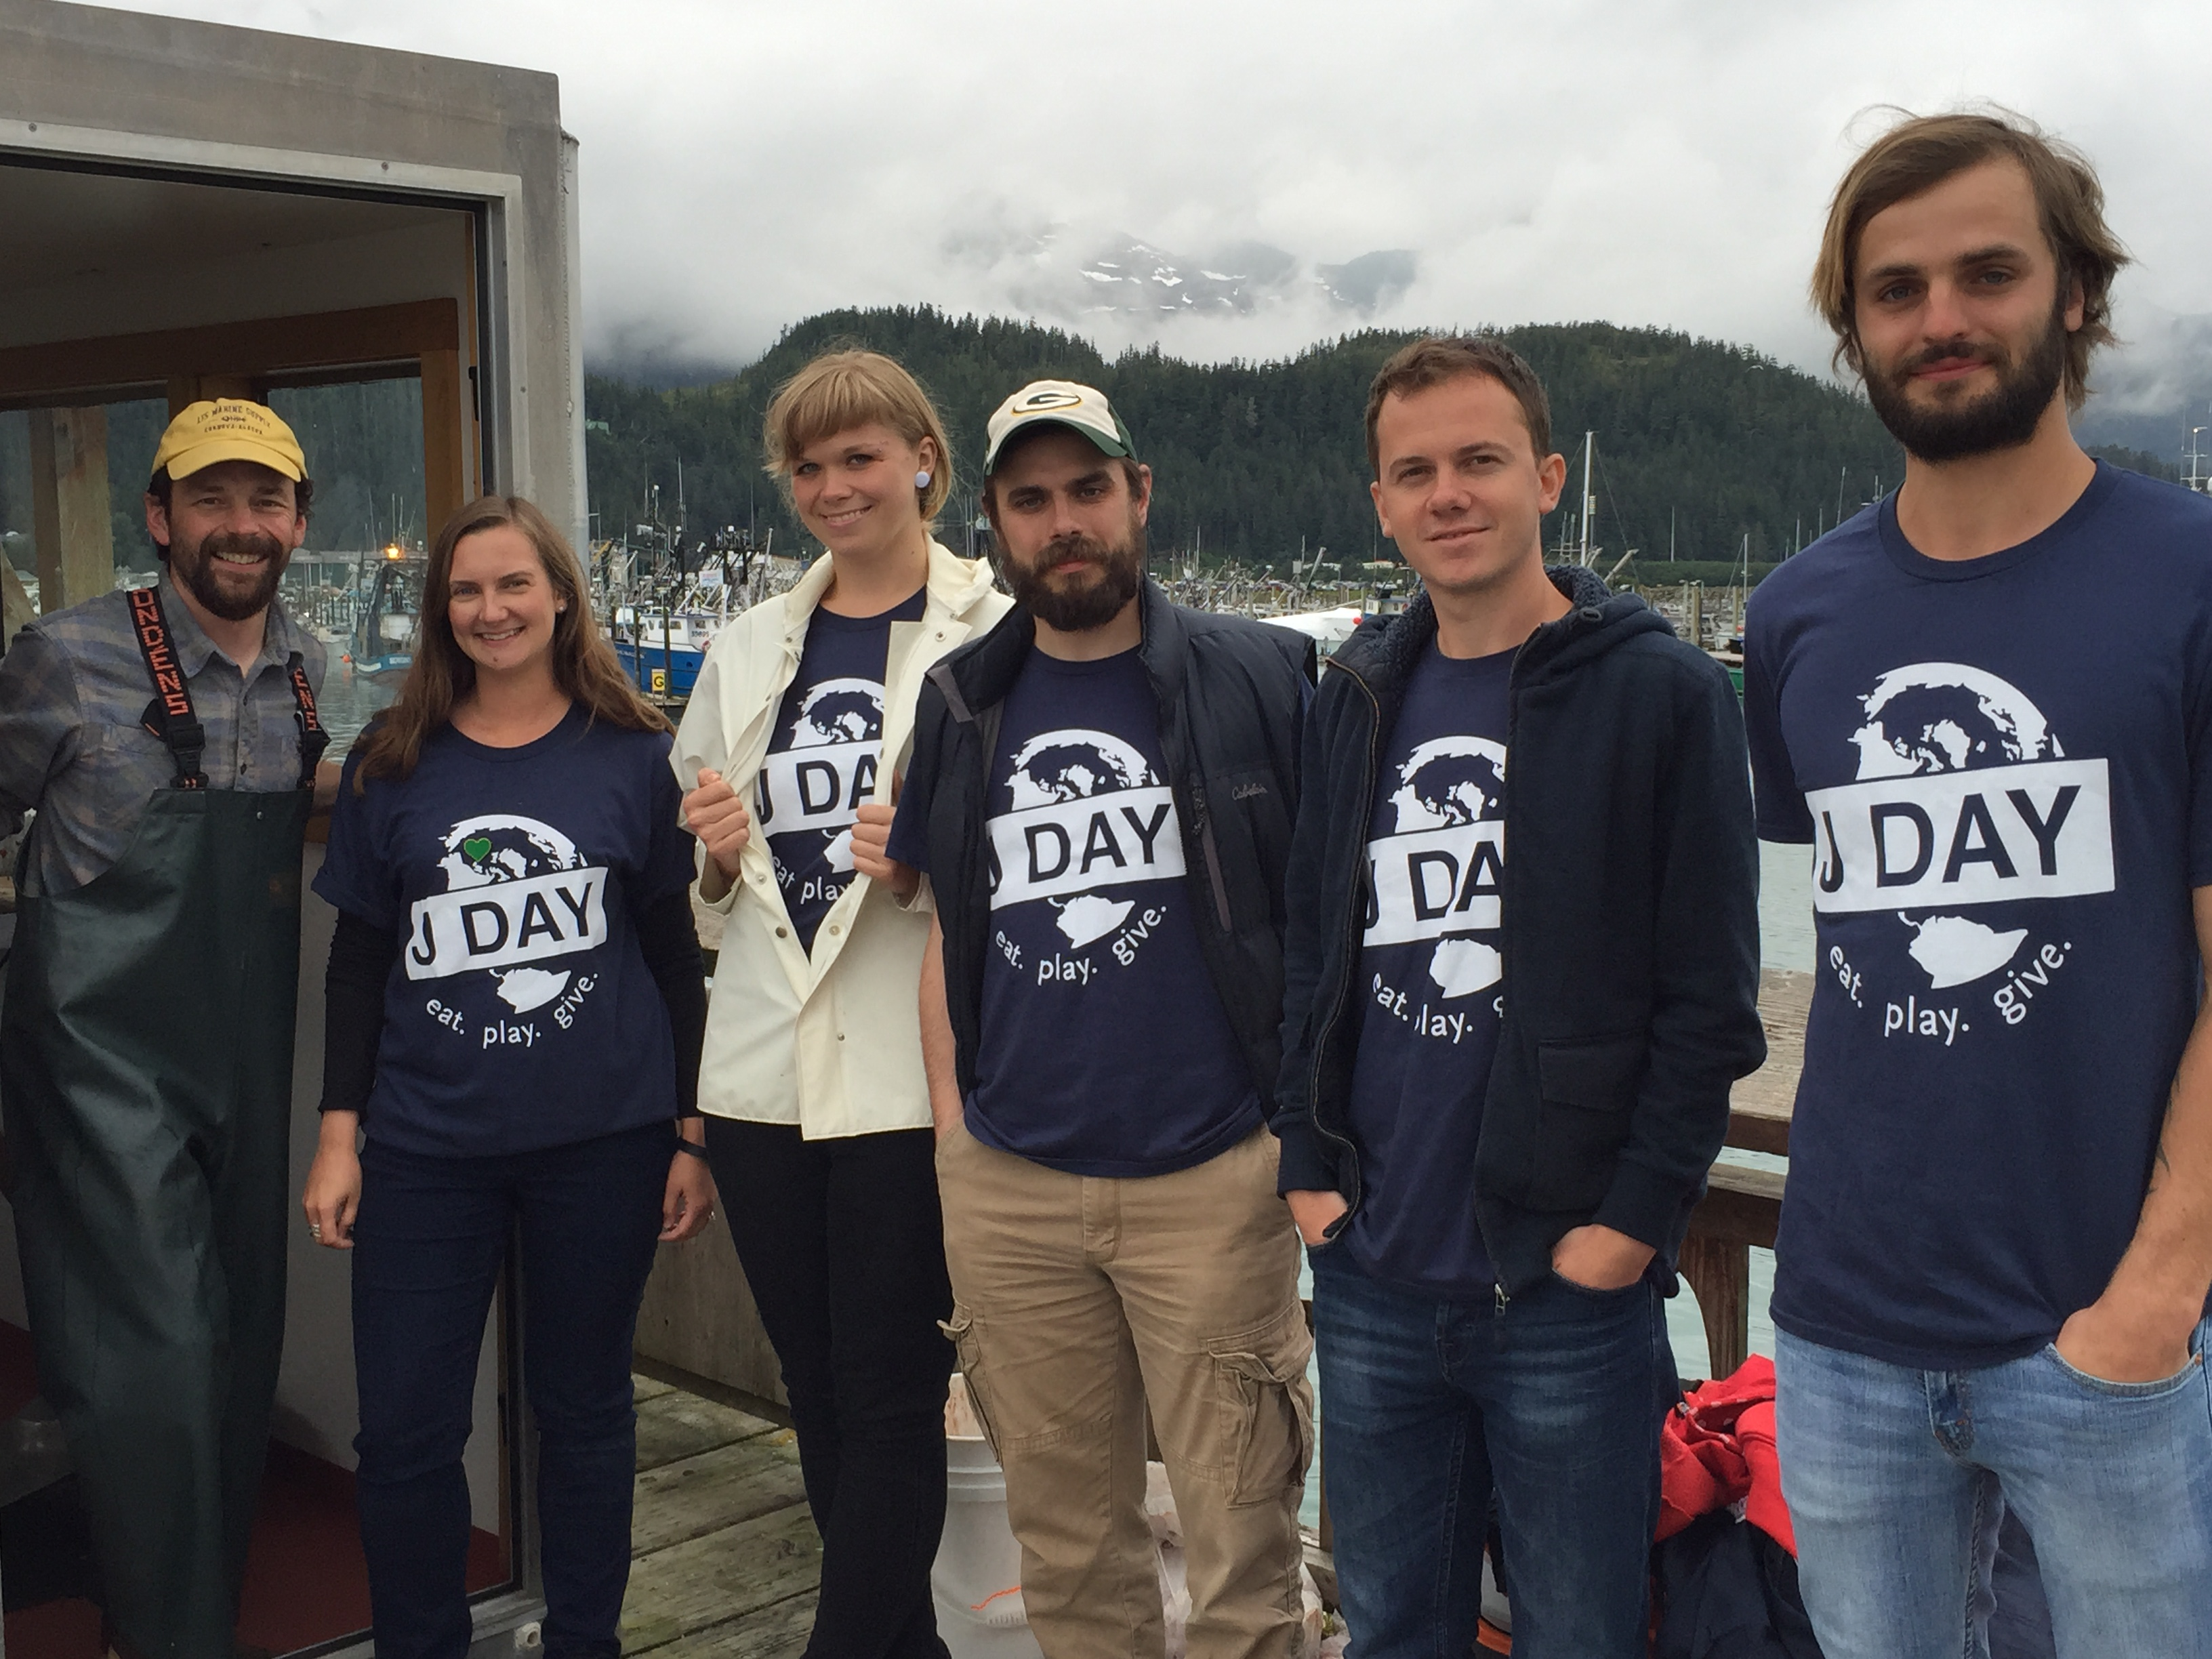 J-1 exchange visitors tour Prince William Sound Science Center on J Day.